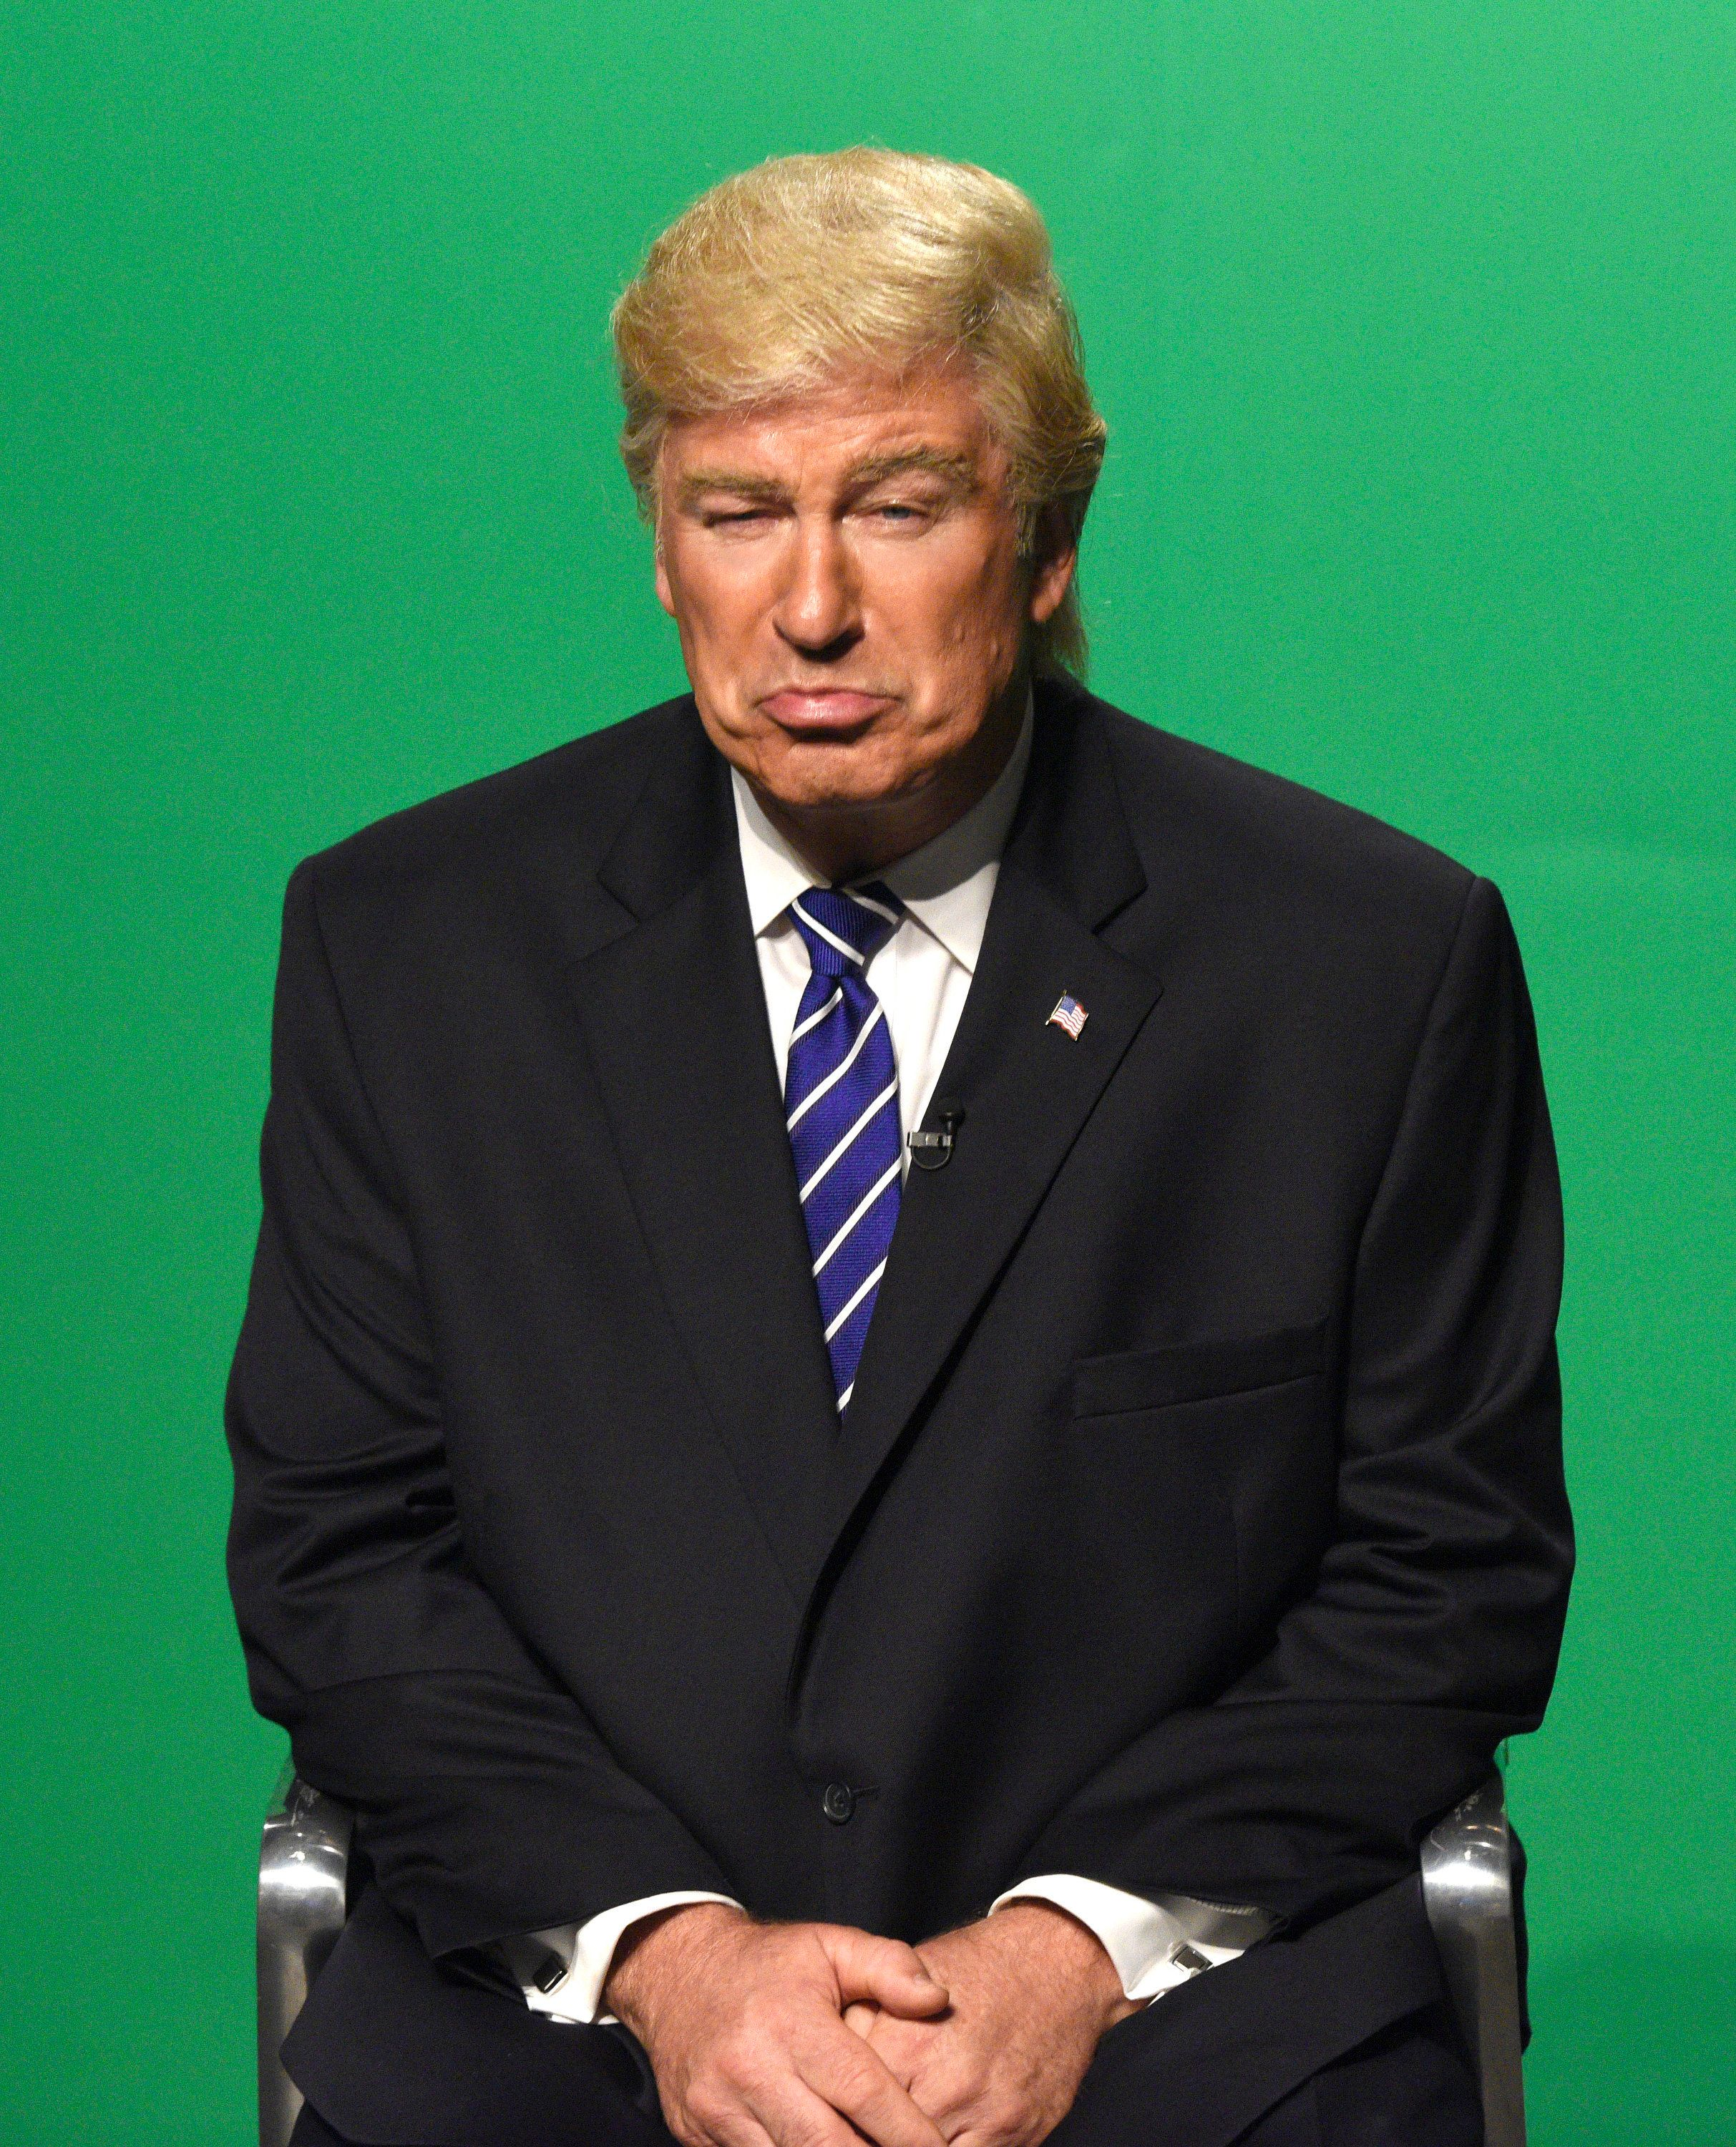 At least one person in the White House digs Alec Baldwin's Trump impersonation.